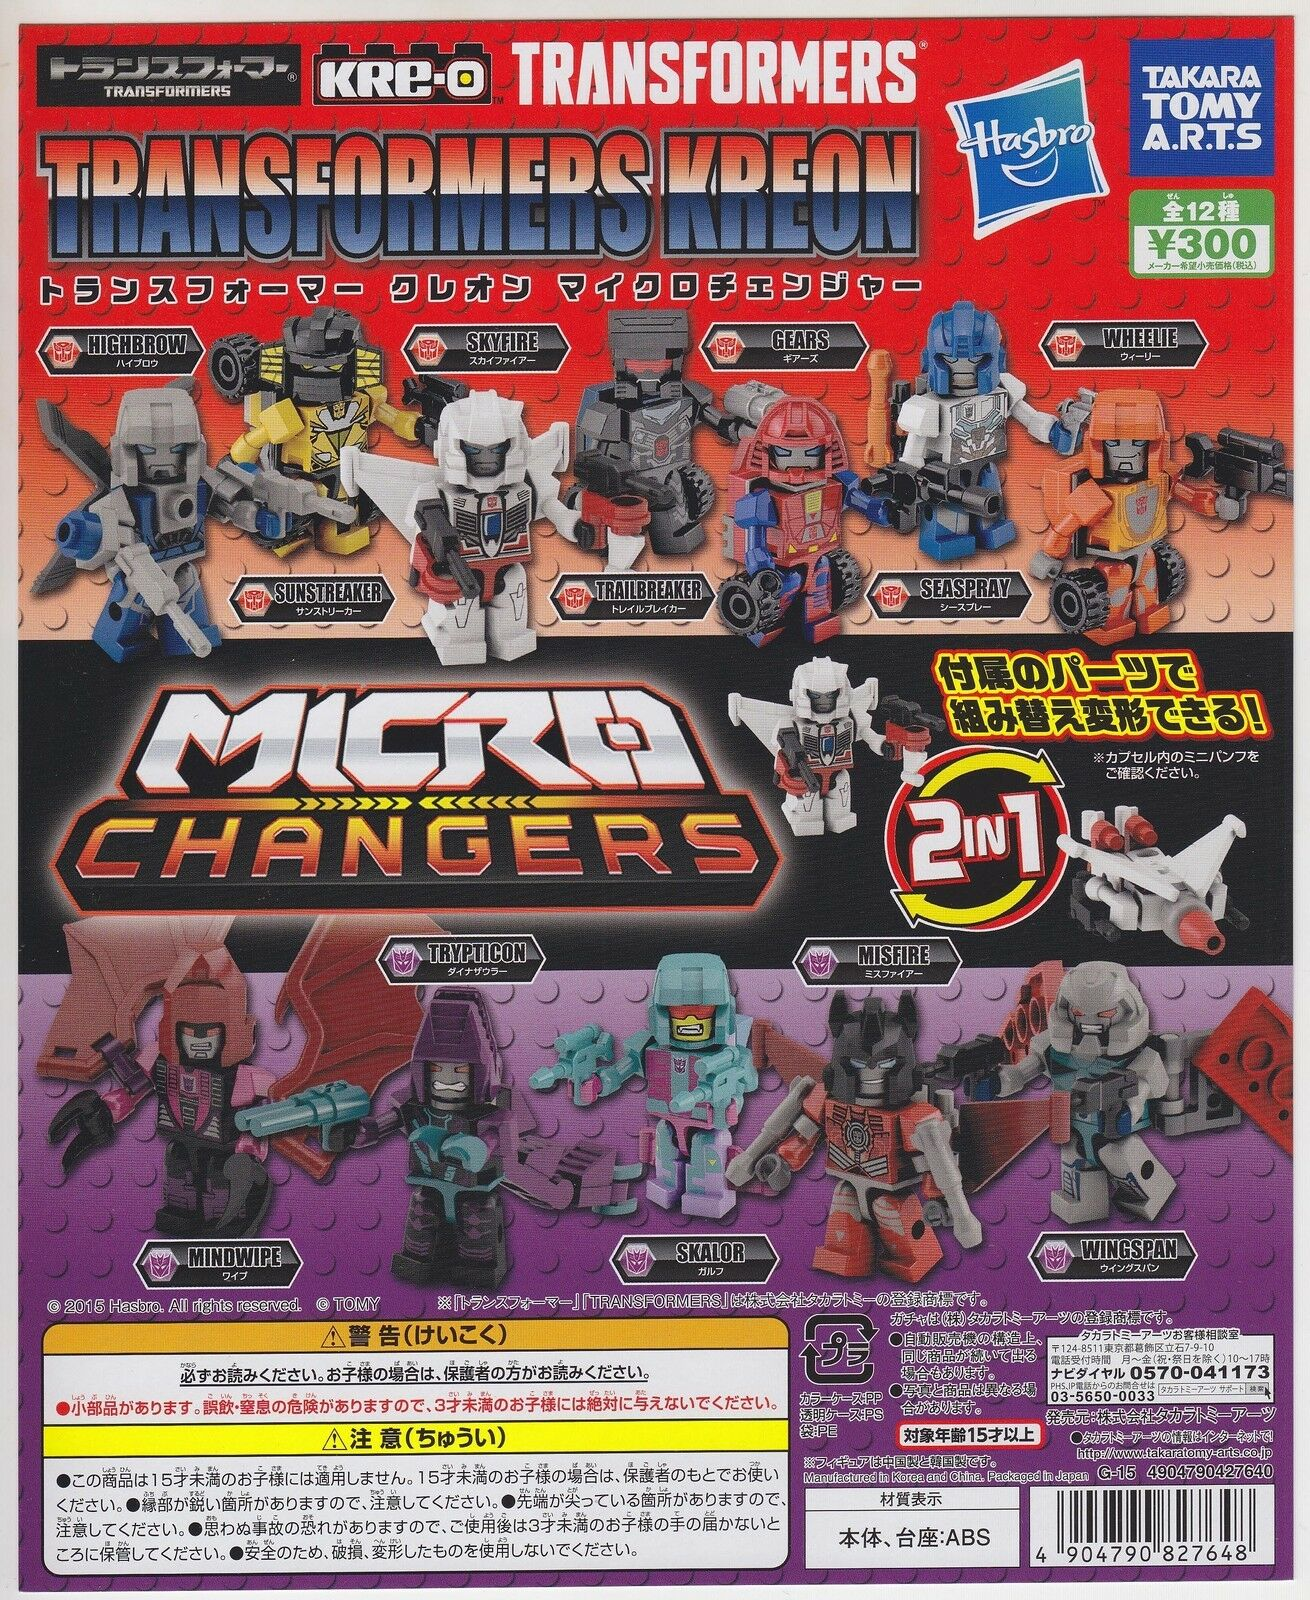 Kre-O Gashapon Transformers Kreon Micro Changers Full Complete Set (12)